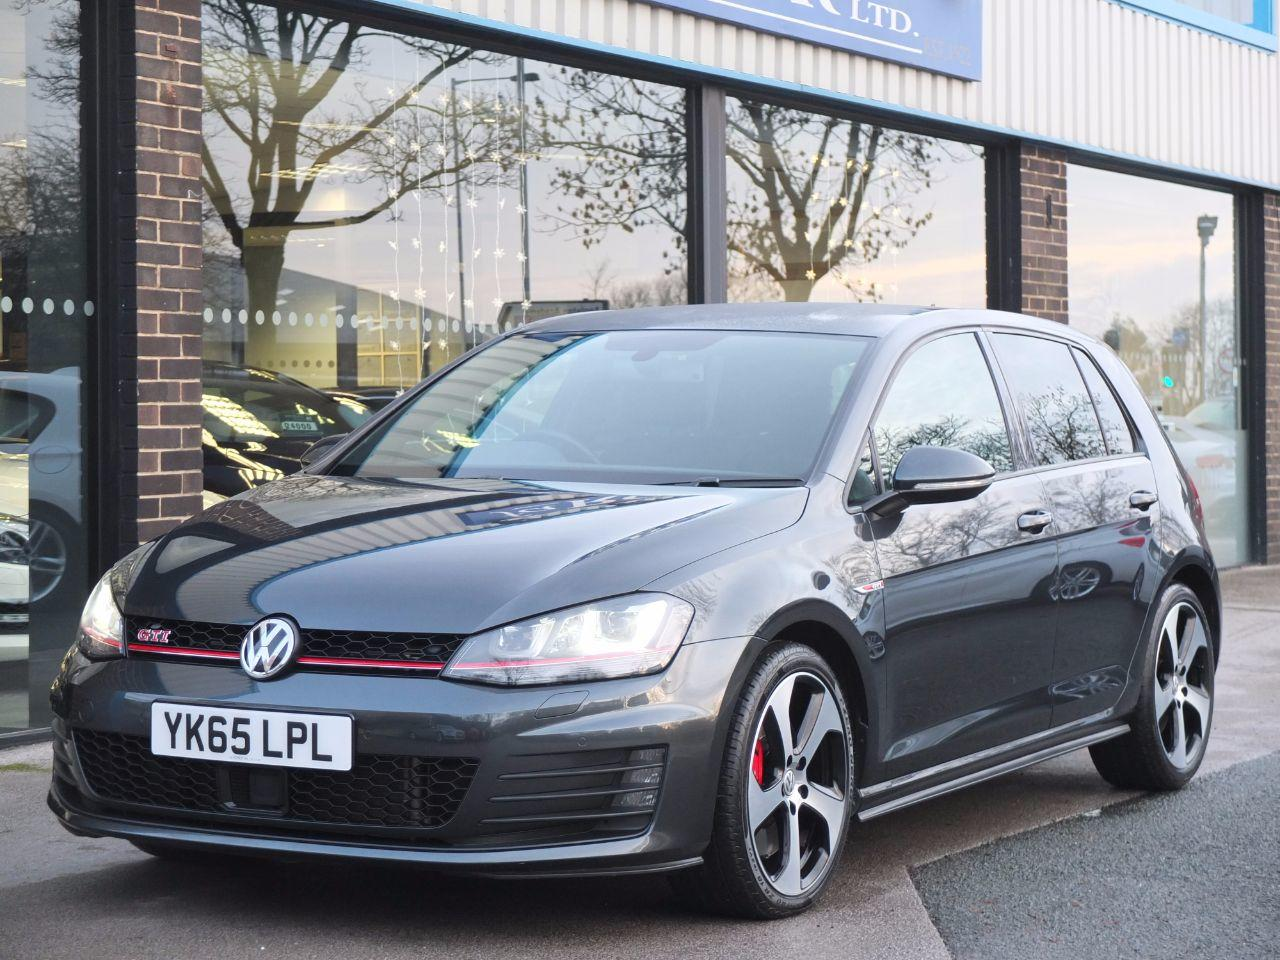 Volkswagen Golf 2.0 TSI GTI 5 door DSG [Performance Pack 230ps] Hatchback Petrol Carbon Grey MetallicVolkswagen Golf 2.0 TSI GTI 5 door DSG [Performance Pack 230ps] Hatchback Petrol Carbon Grey Metallic at fa Roper Ltd Bradford